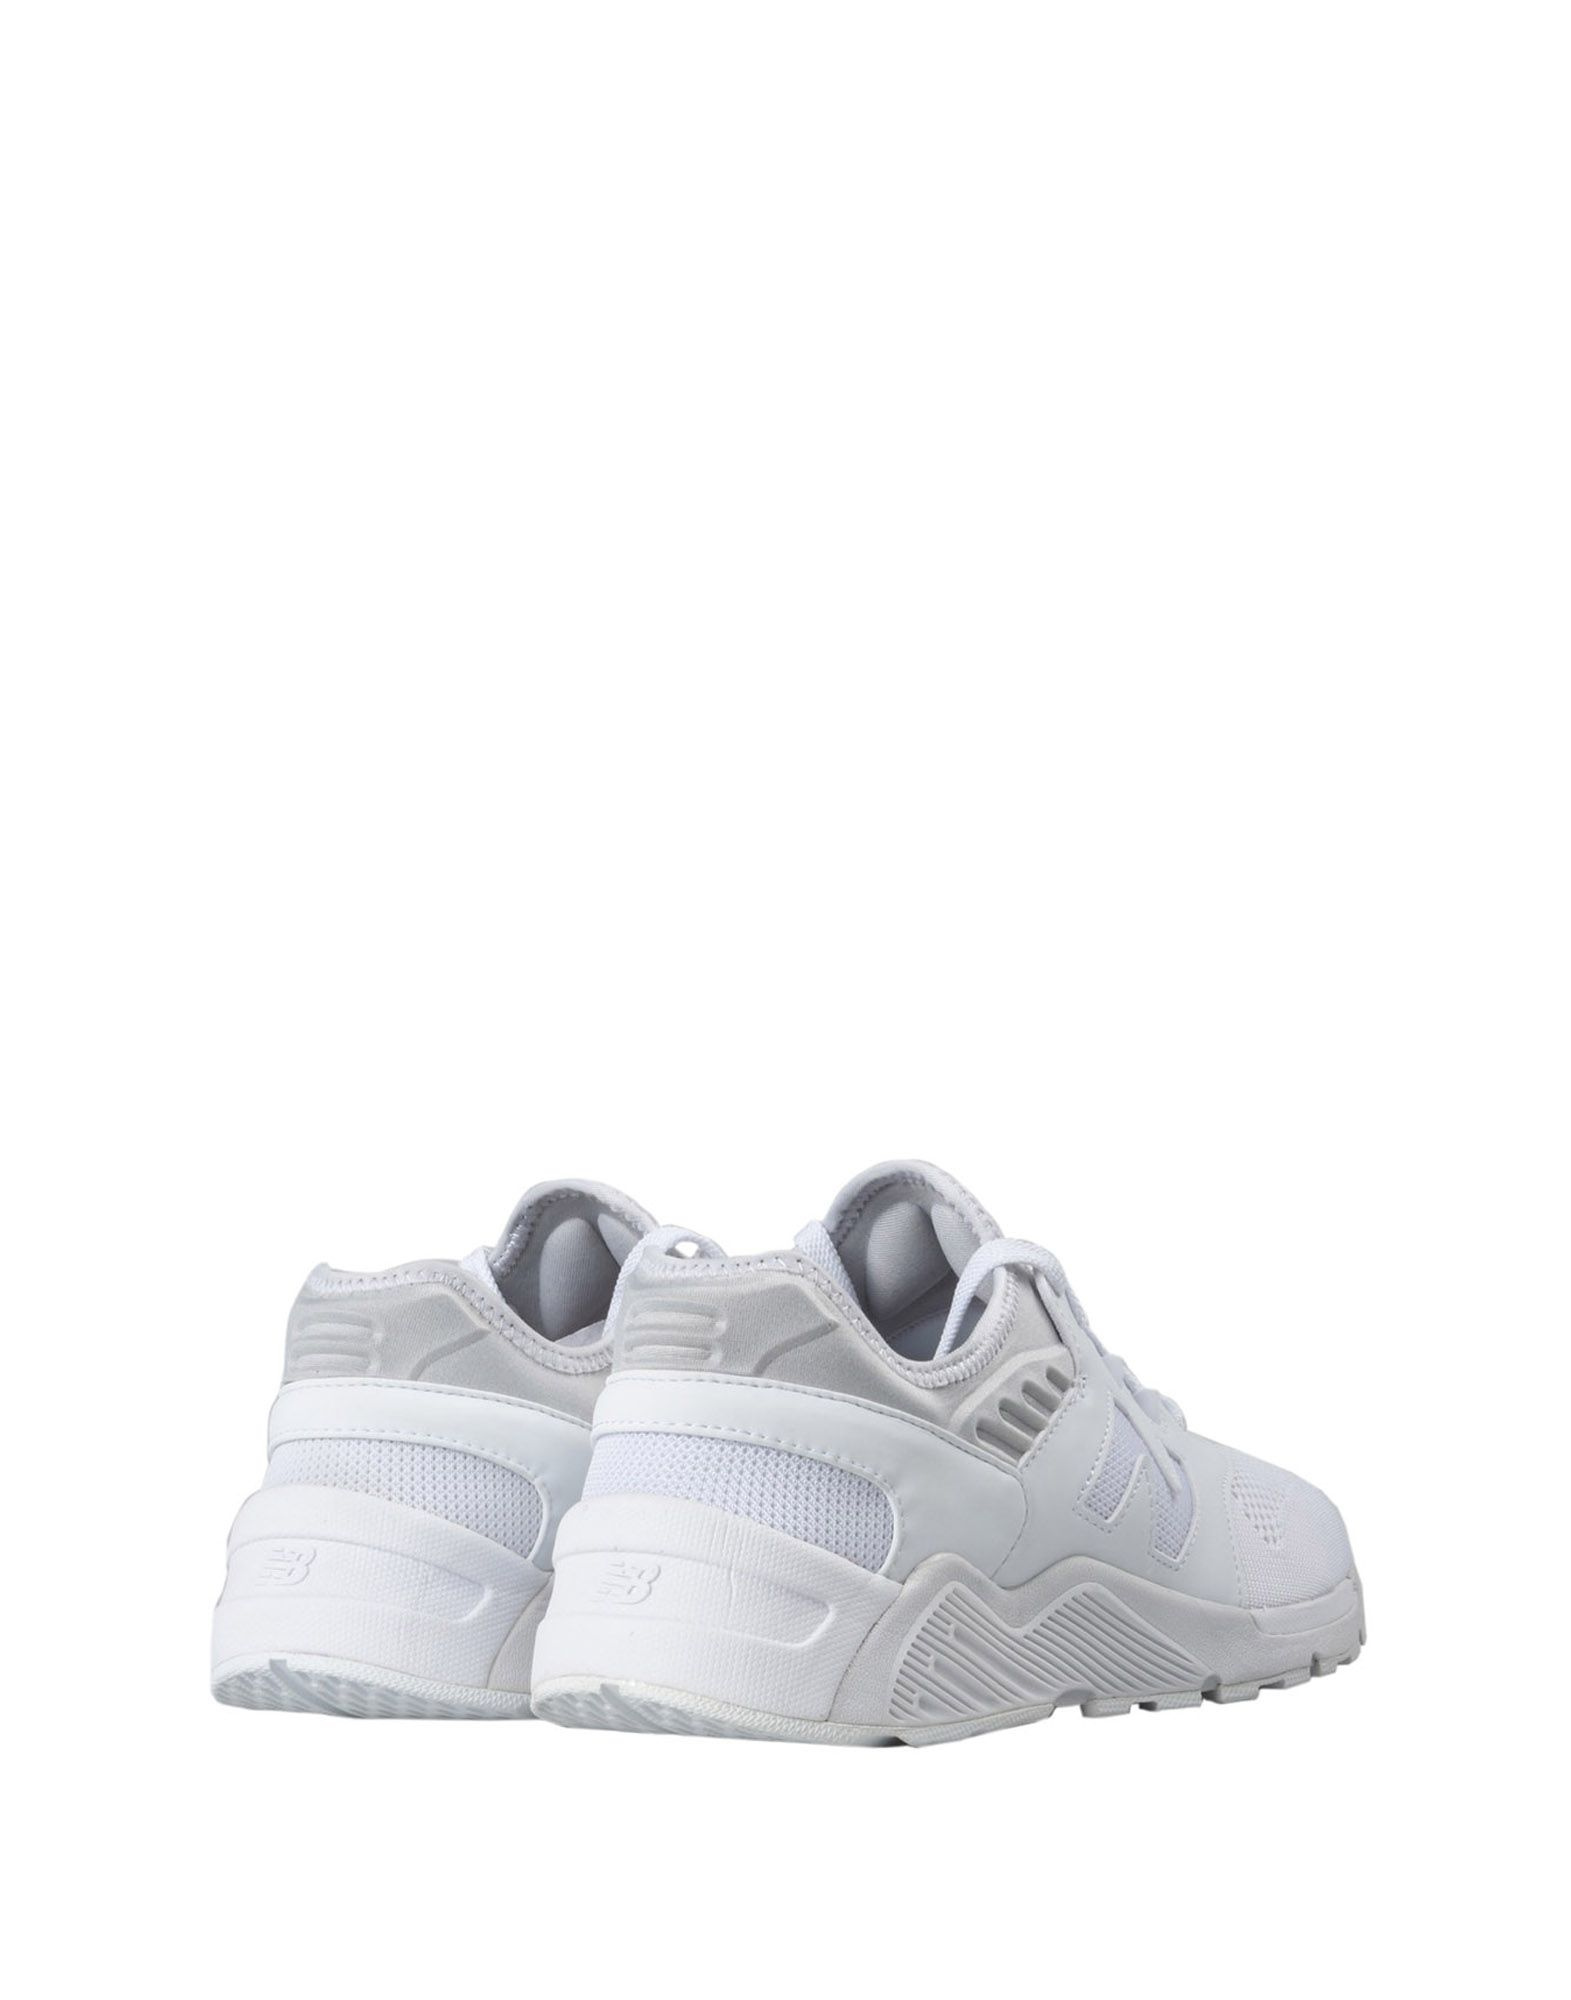 Sneakers New Balance 009 Hybrid - Homme - Sneakers New Balance sur